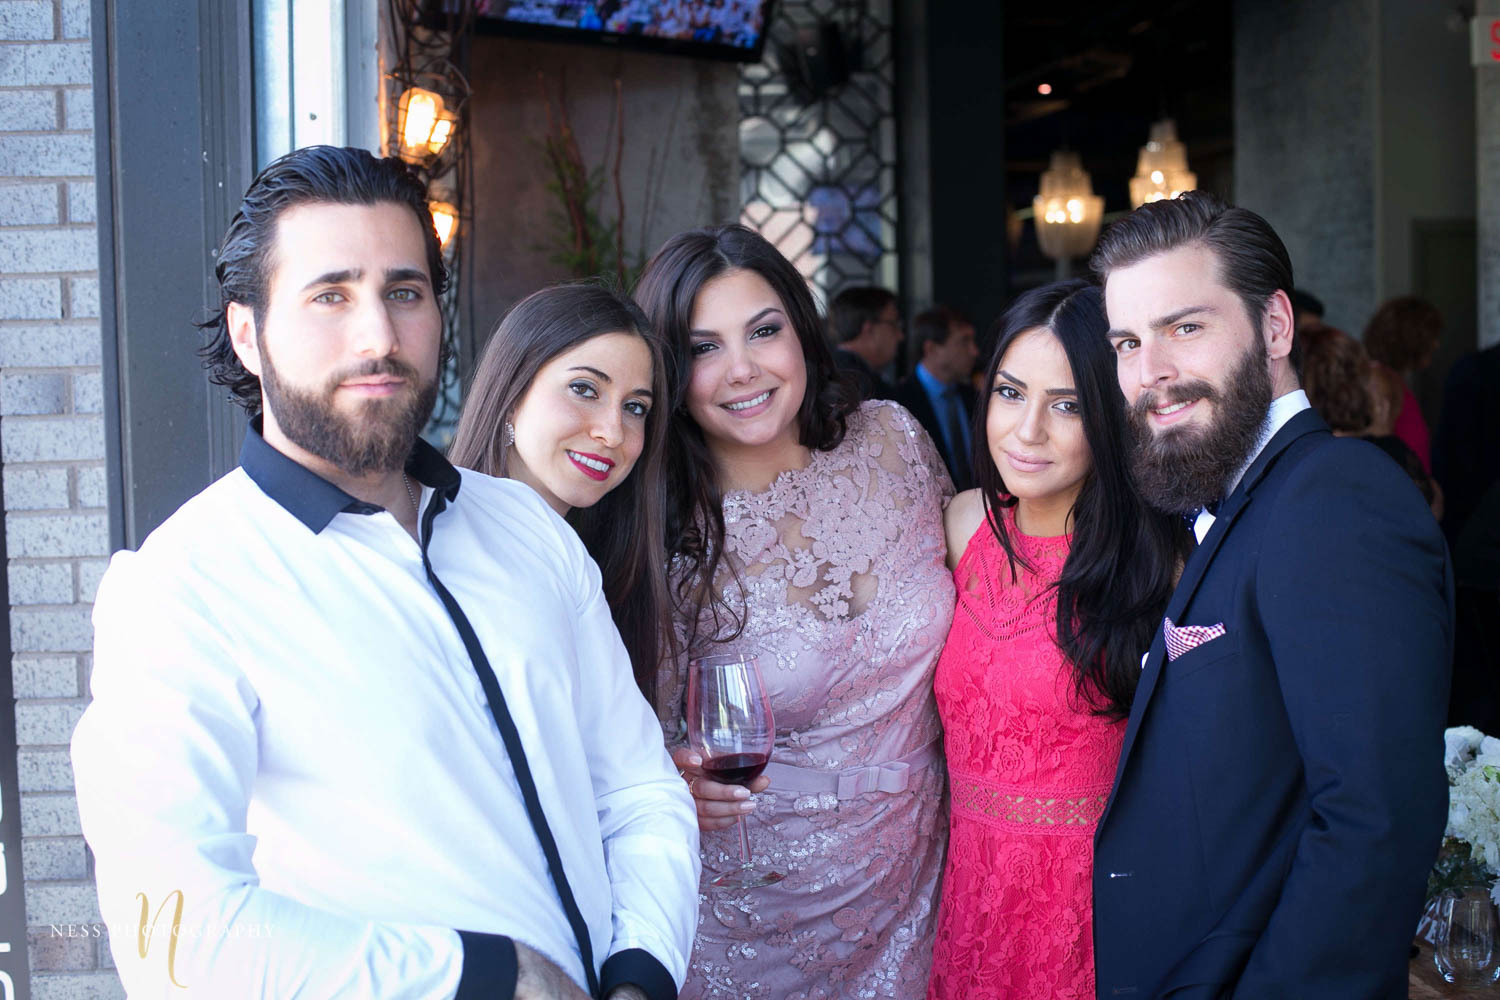 bride to be surrounded by guests for group photo at engagement Party in Montreal